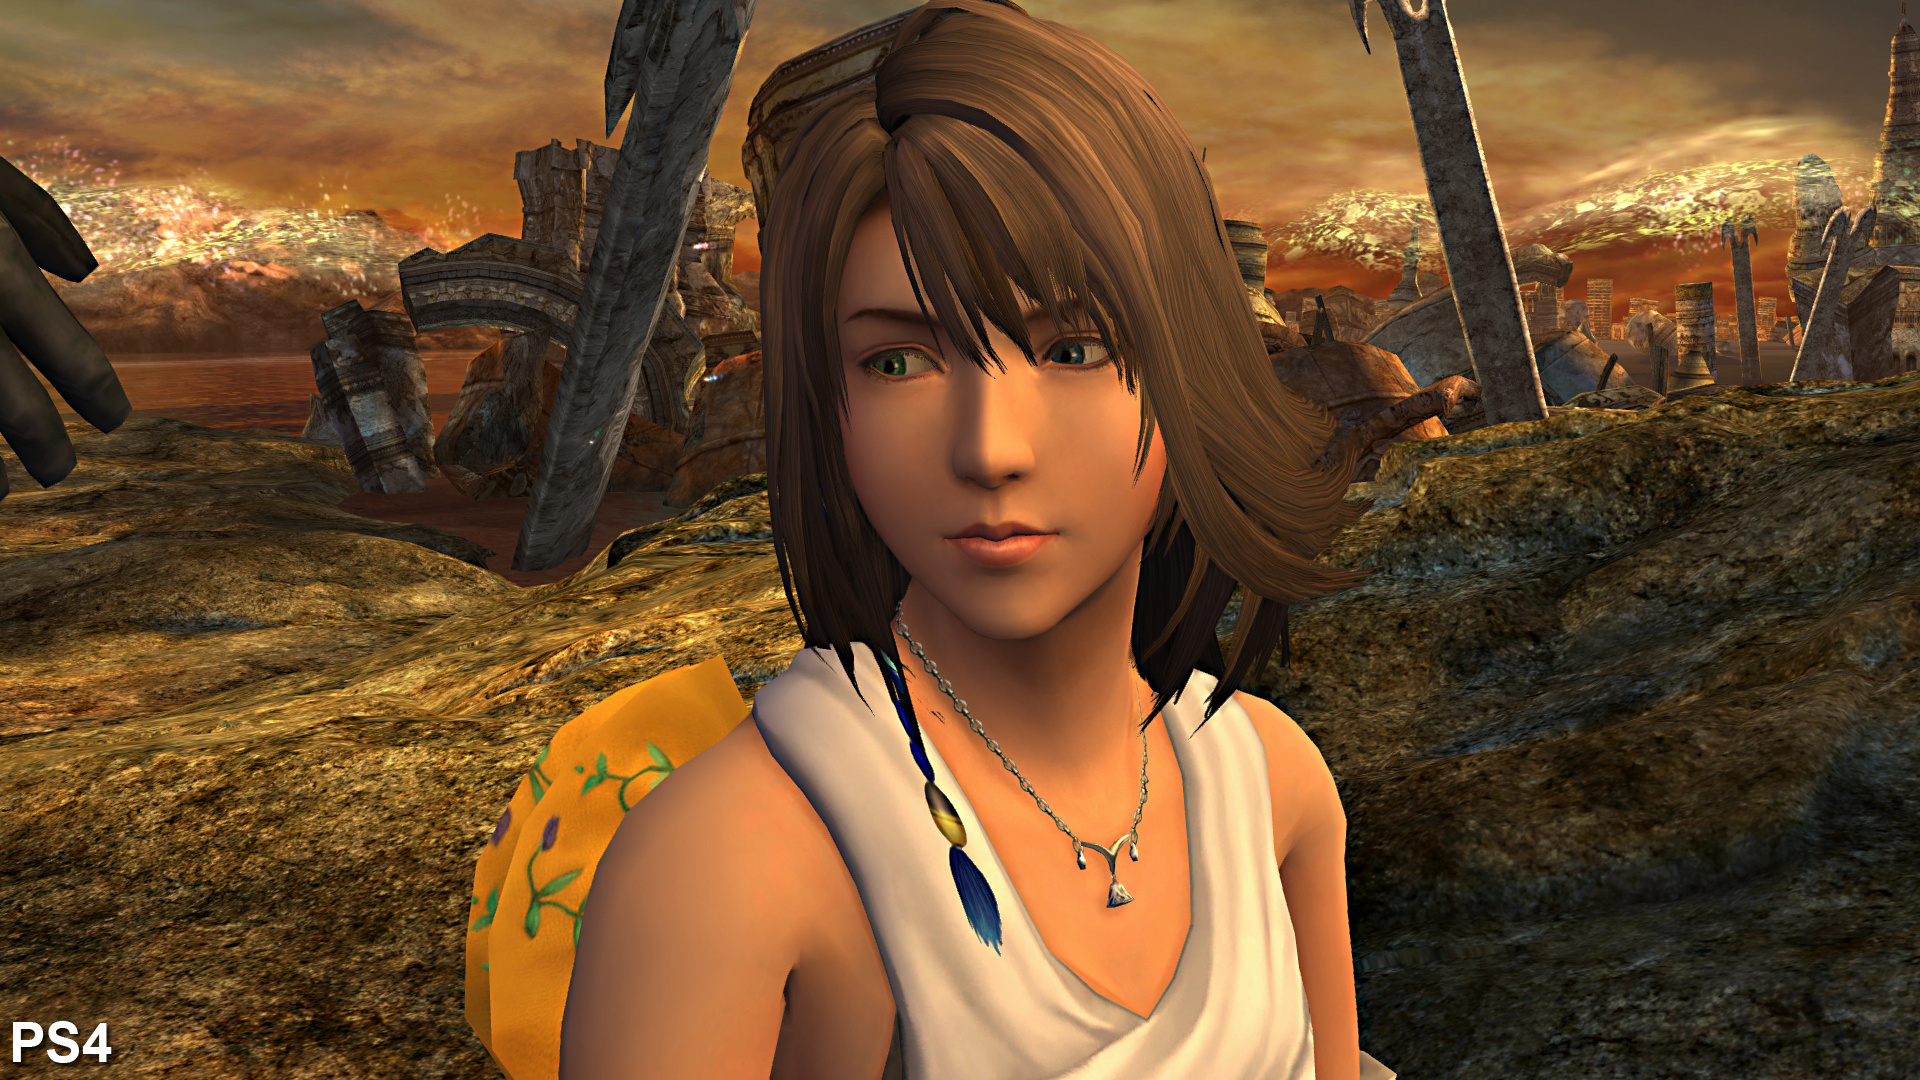 Face-Off: Final Fantasy X/X-2 Remaster on PS4